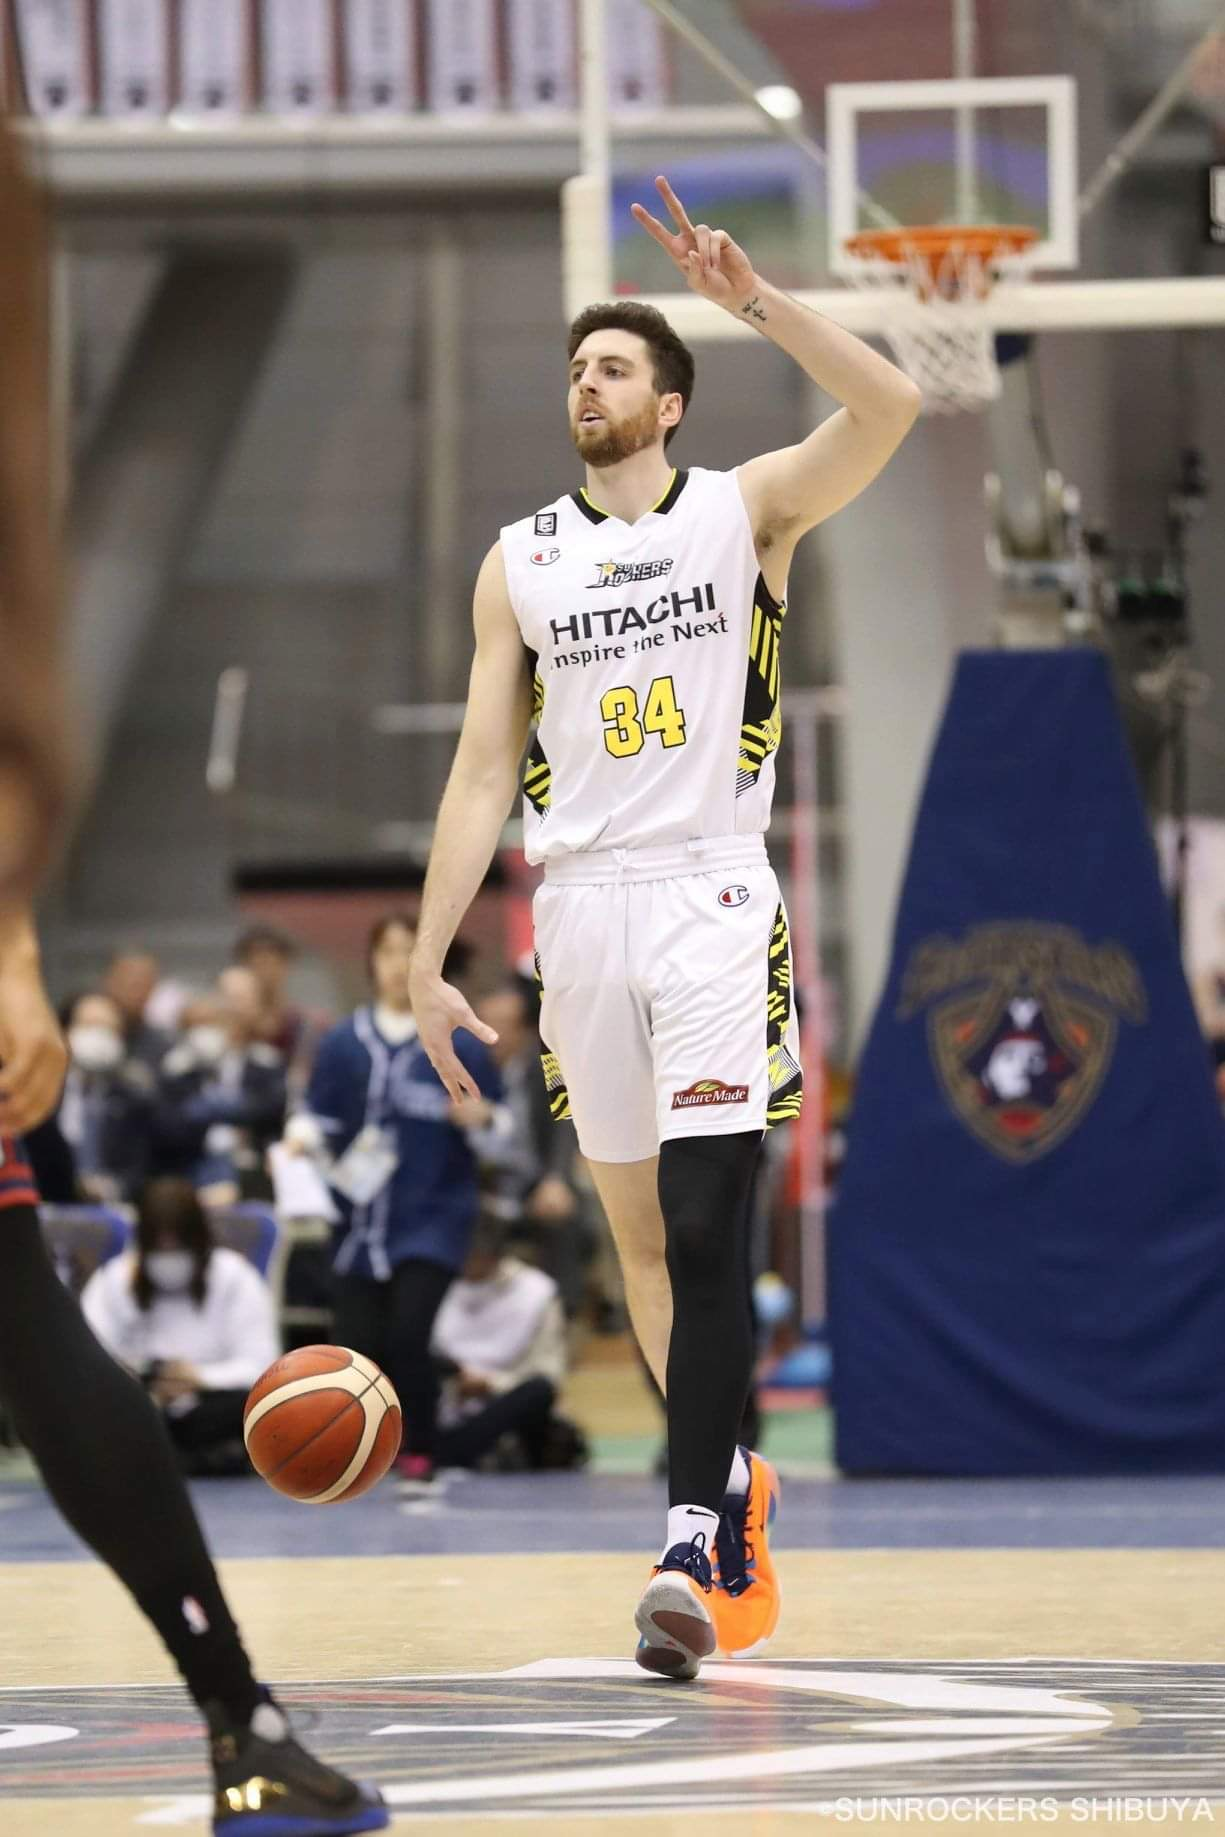 From Duke to Japan and every stop along the way Ryan Kelly has committed himself to being the best version of himself through hard work